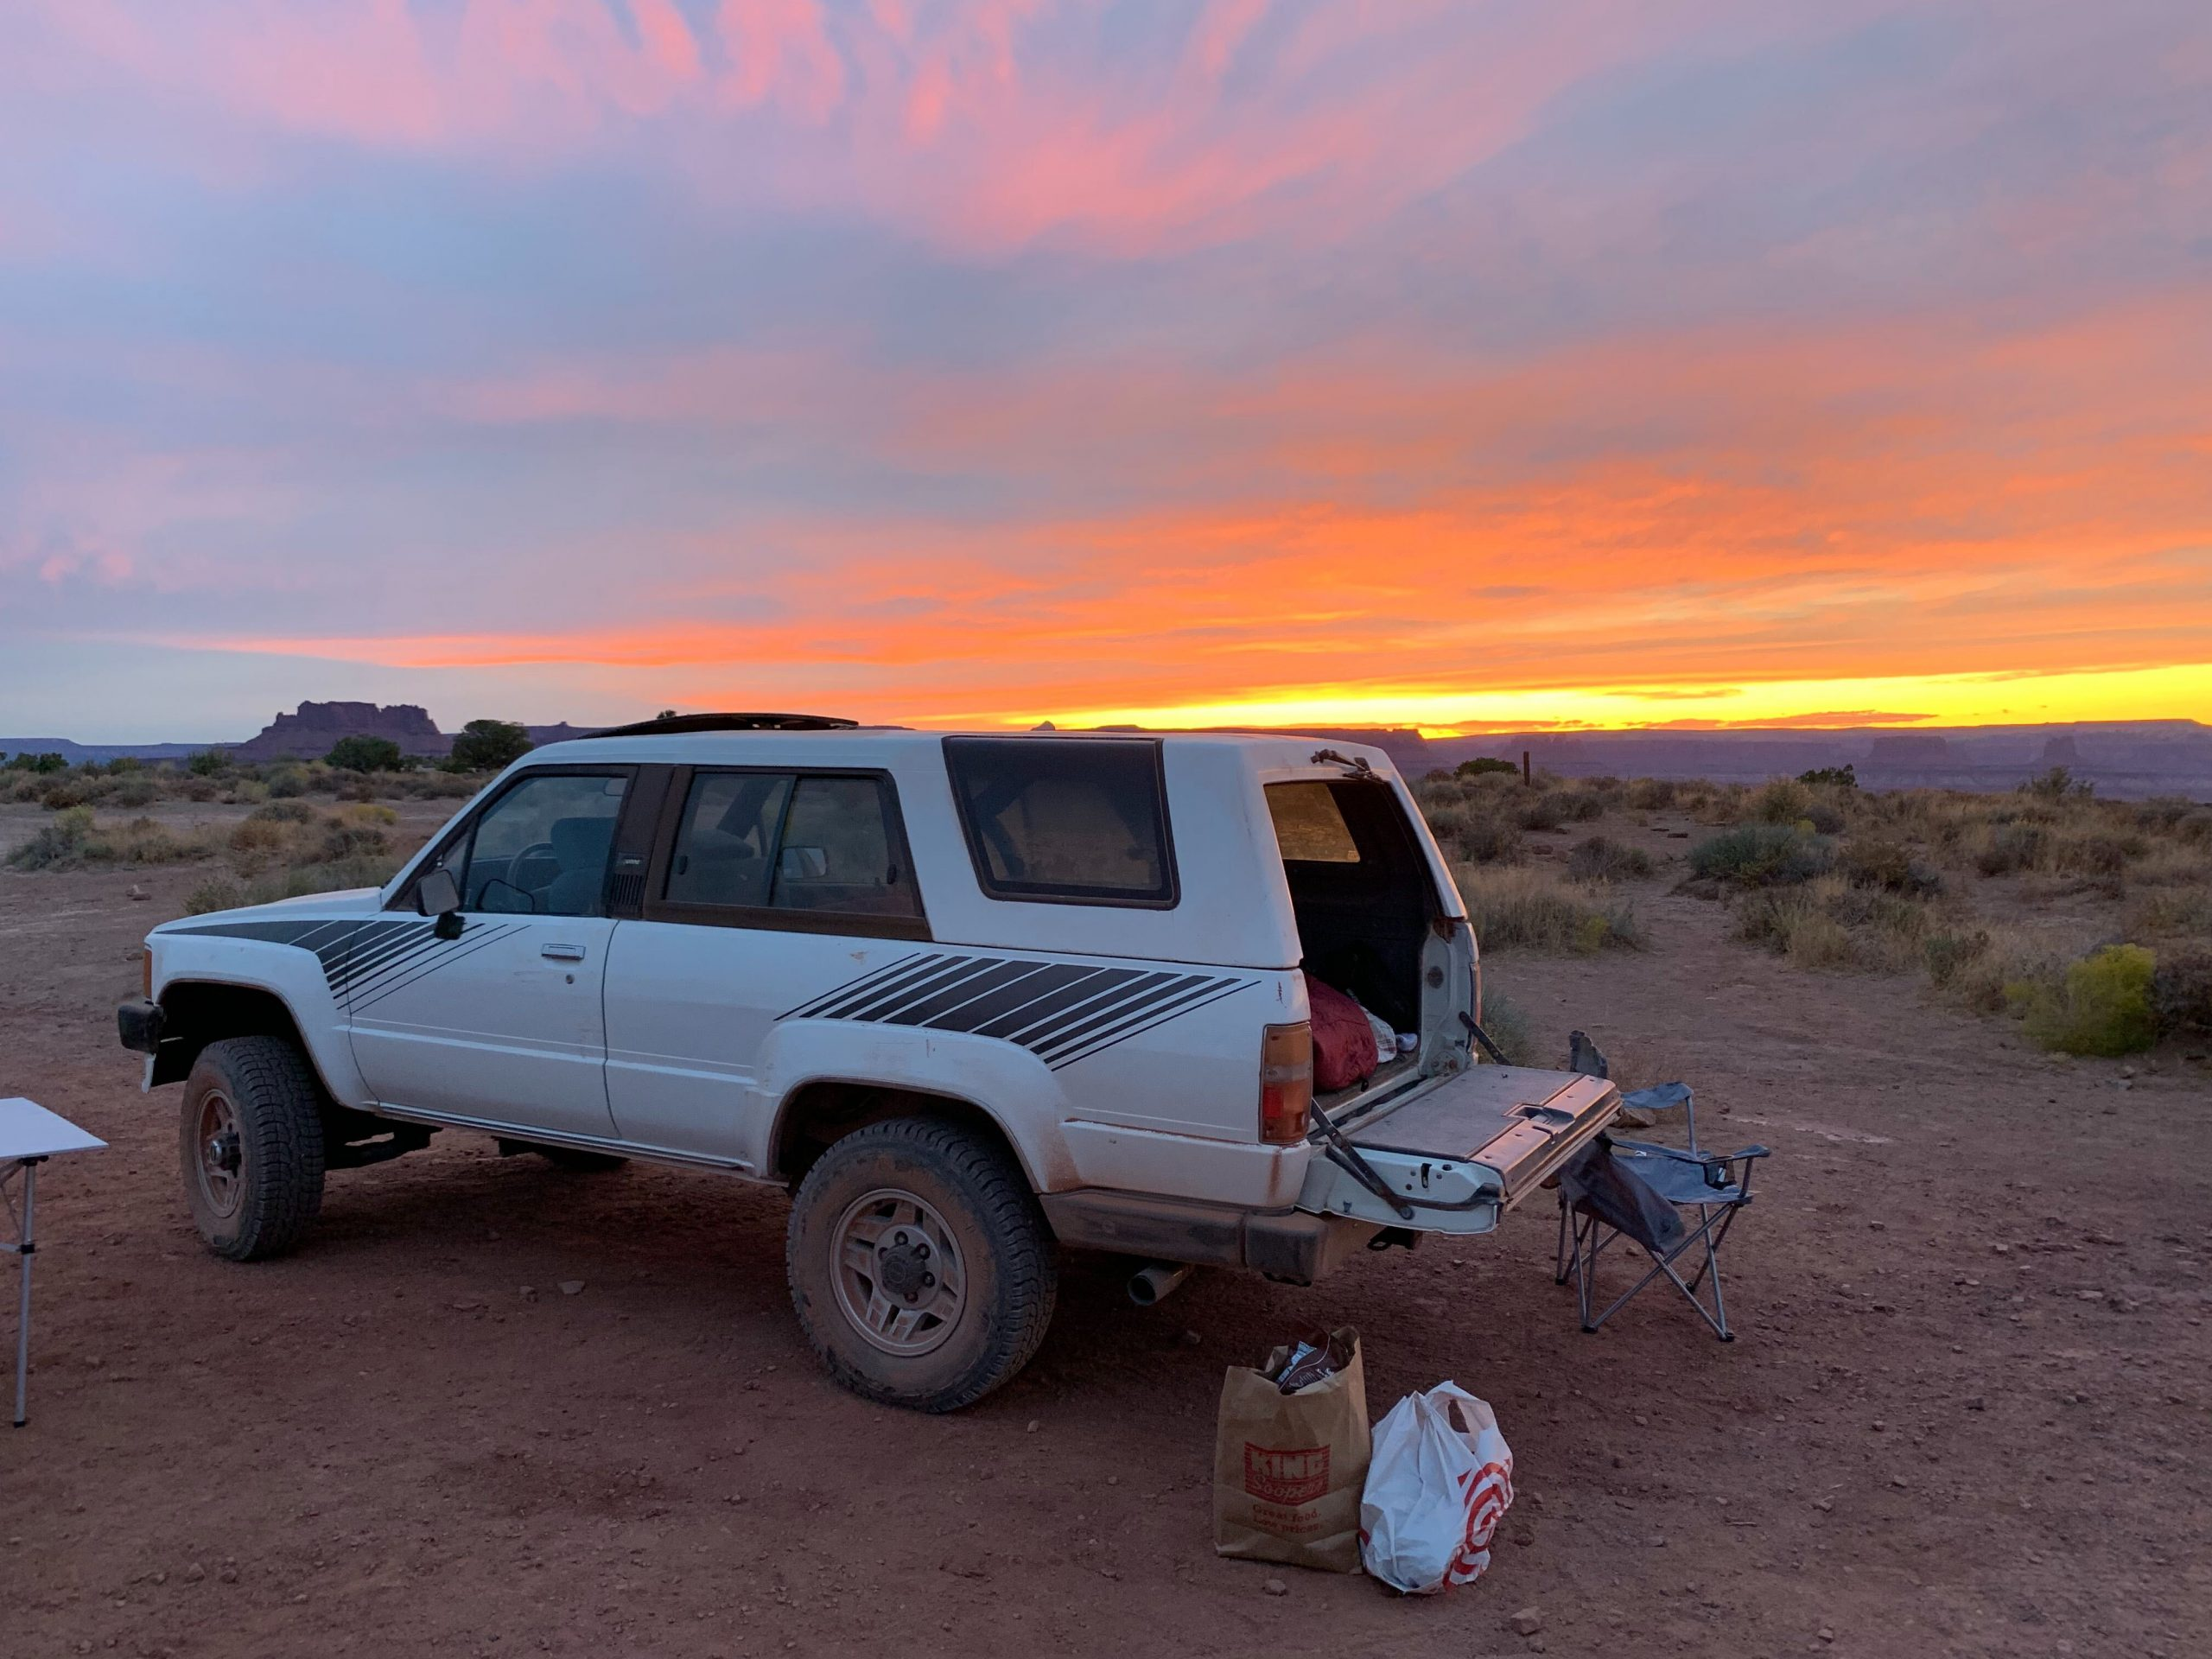 Logan Calkins 1987 Toyota 4 Runner sunset tailgate